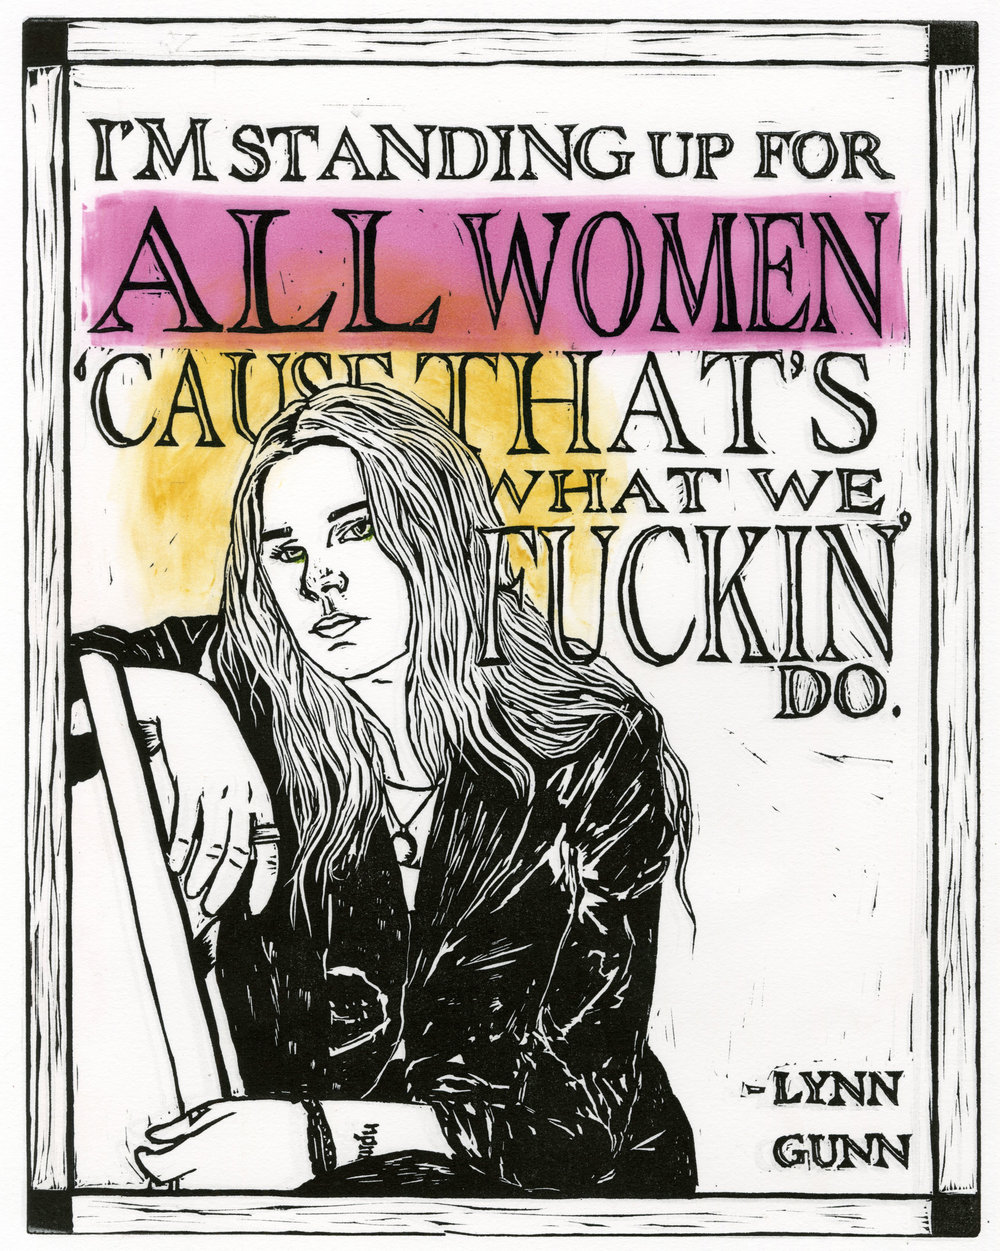 "ALL WOMEN , 2017  While at a Planned Parenthood event, musician Lynn Gunn was asked who she was standing up for. Her response, ""I'm standing up for all women 'cause that's what we fuckin' do."""